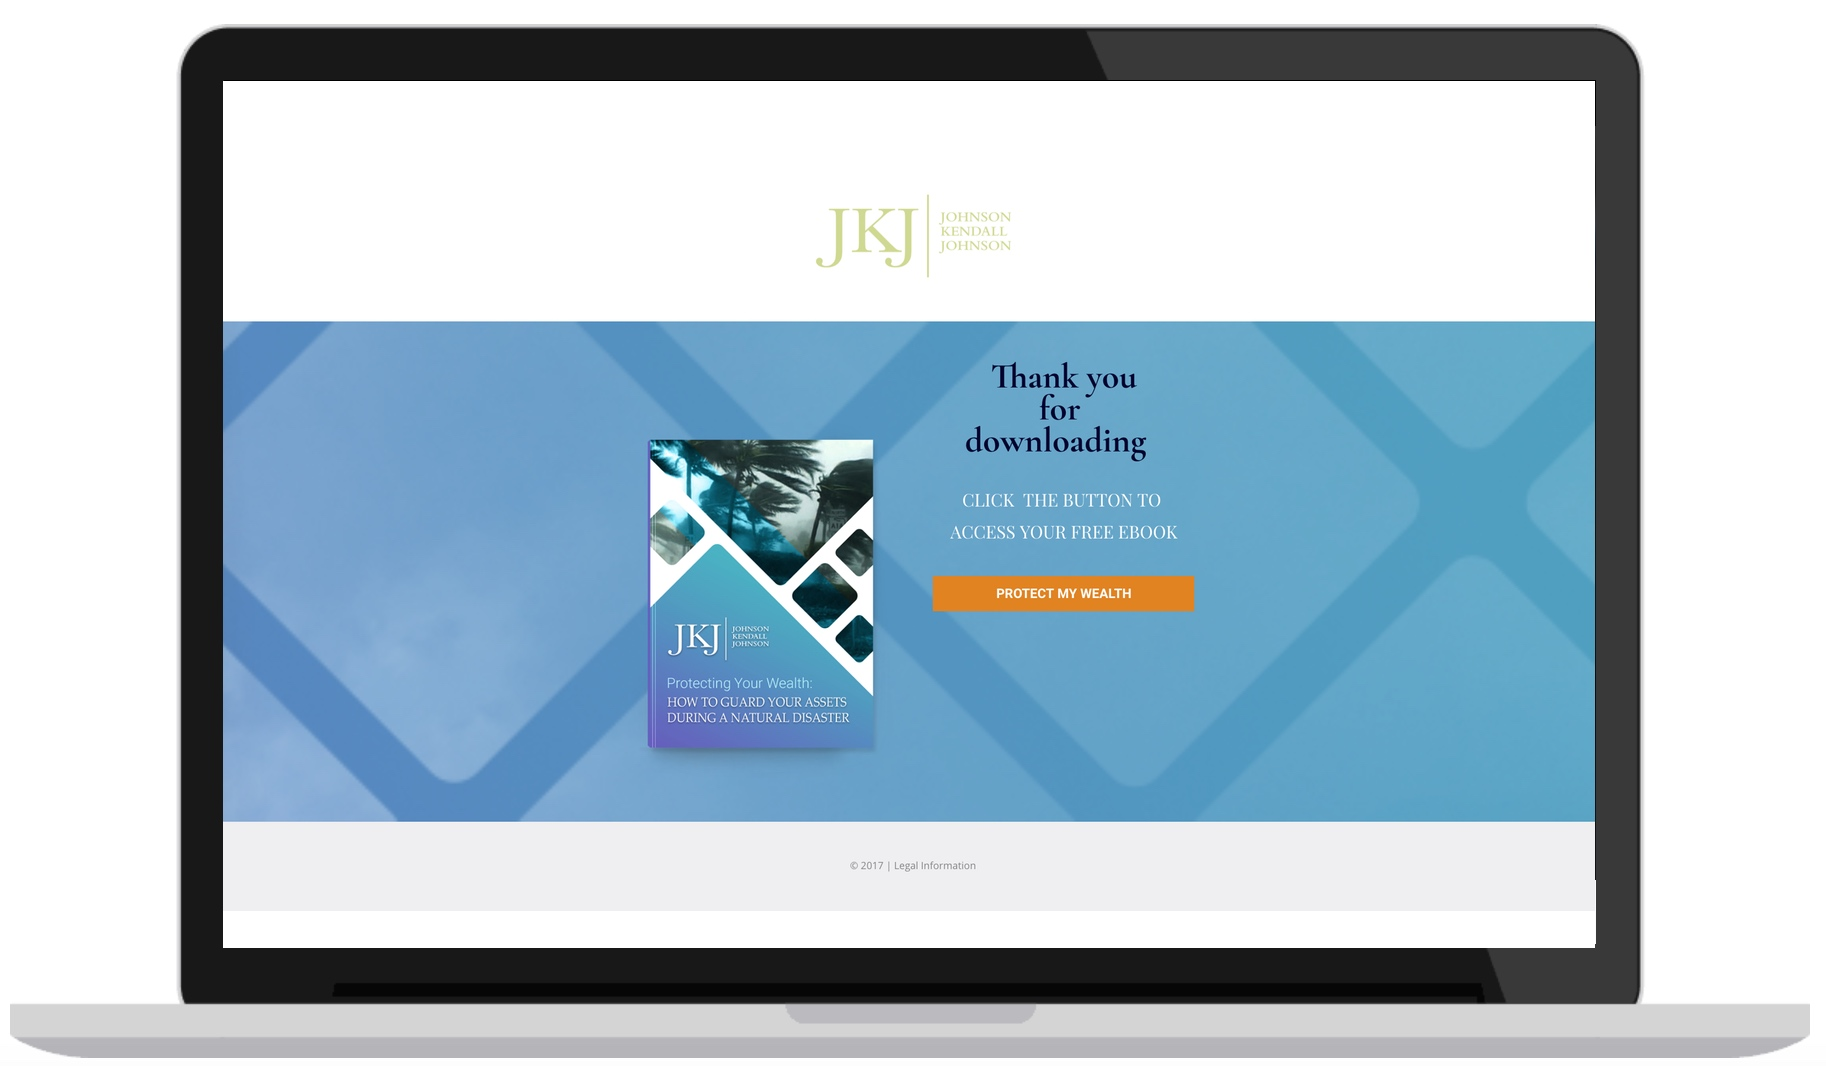 jkj-thank-you-laptop